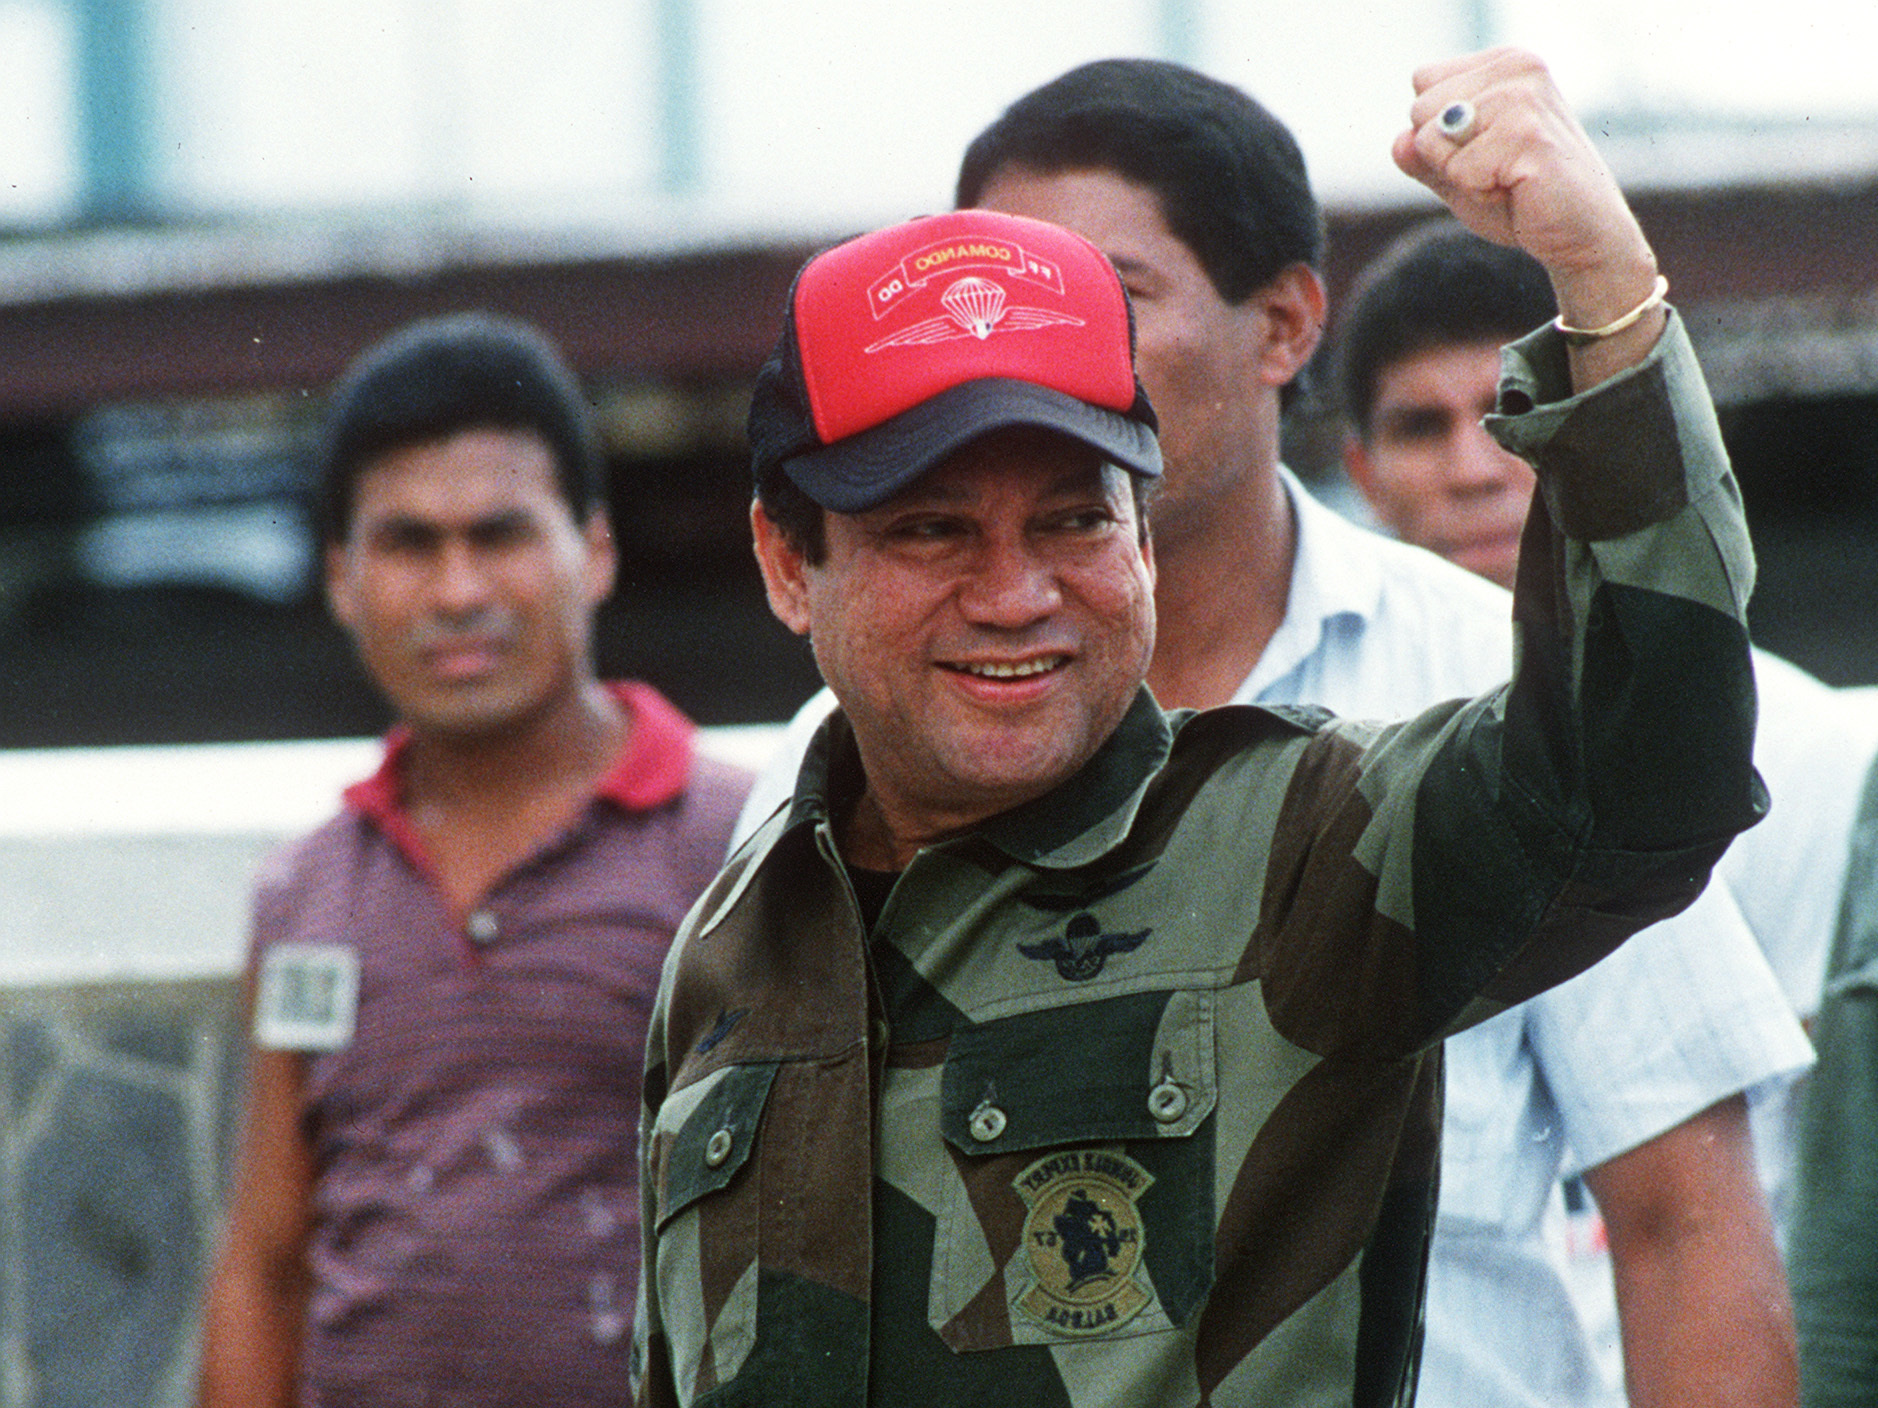 In this 1989 photograph, former Panamanian leader Gen. Manuel Noriega waves while leaving his headquarters in Panama City following a failed coup against him. It was just months before Noriega would surrender power amid a U.S. military operation against his government. (Bob Sullivan/AFP/Getty Images)